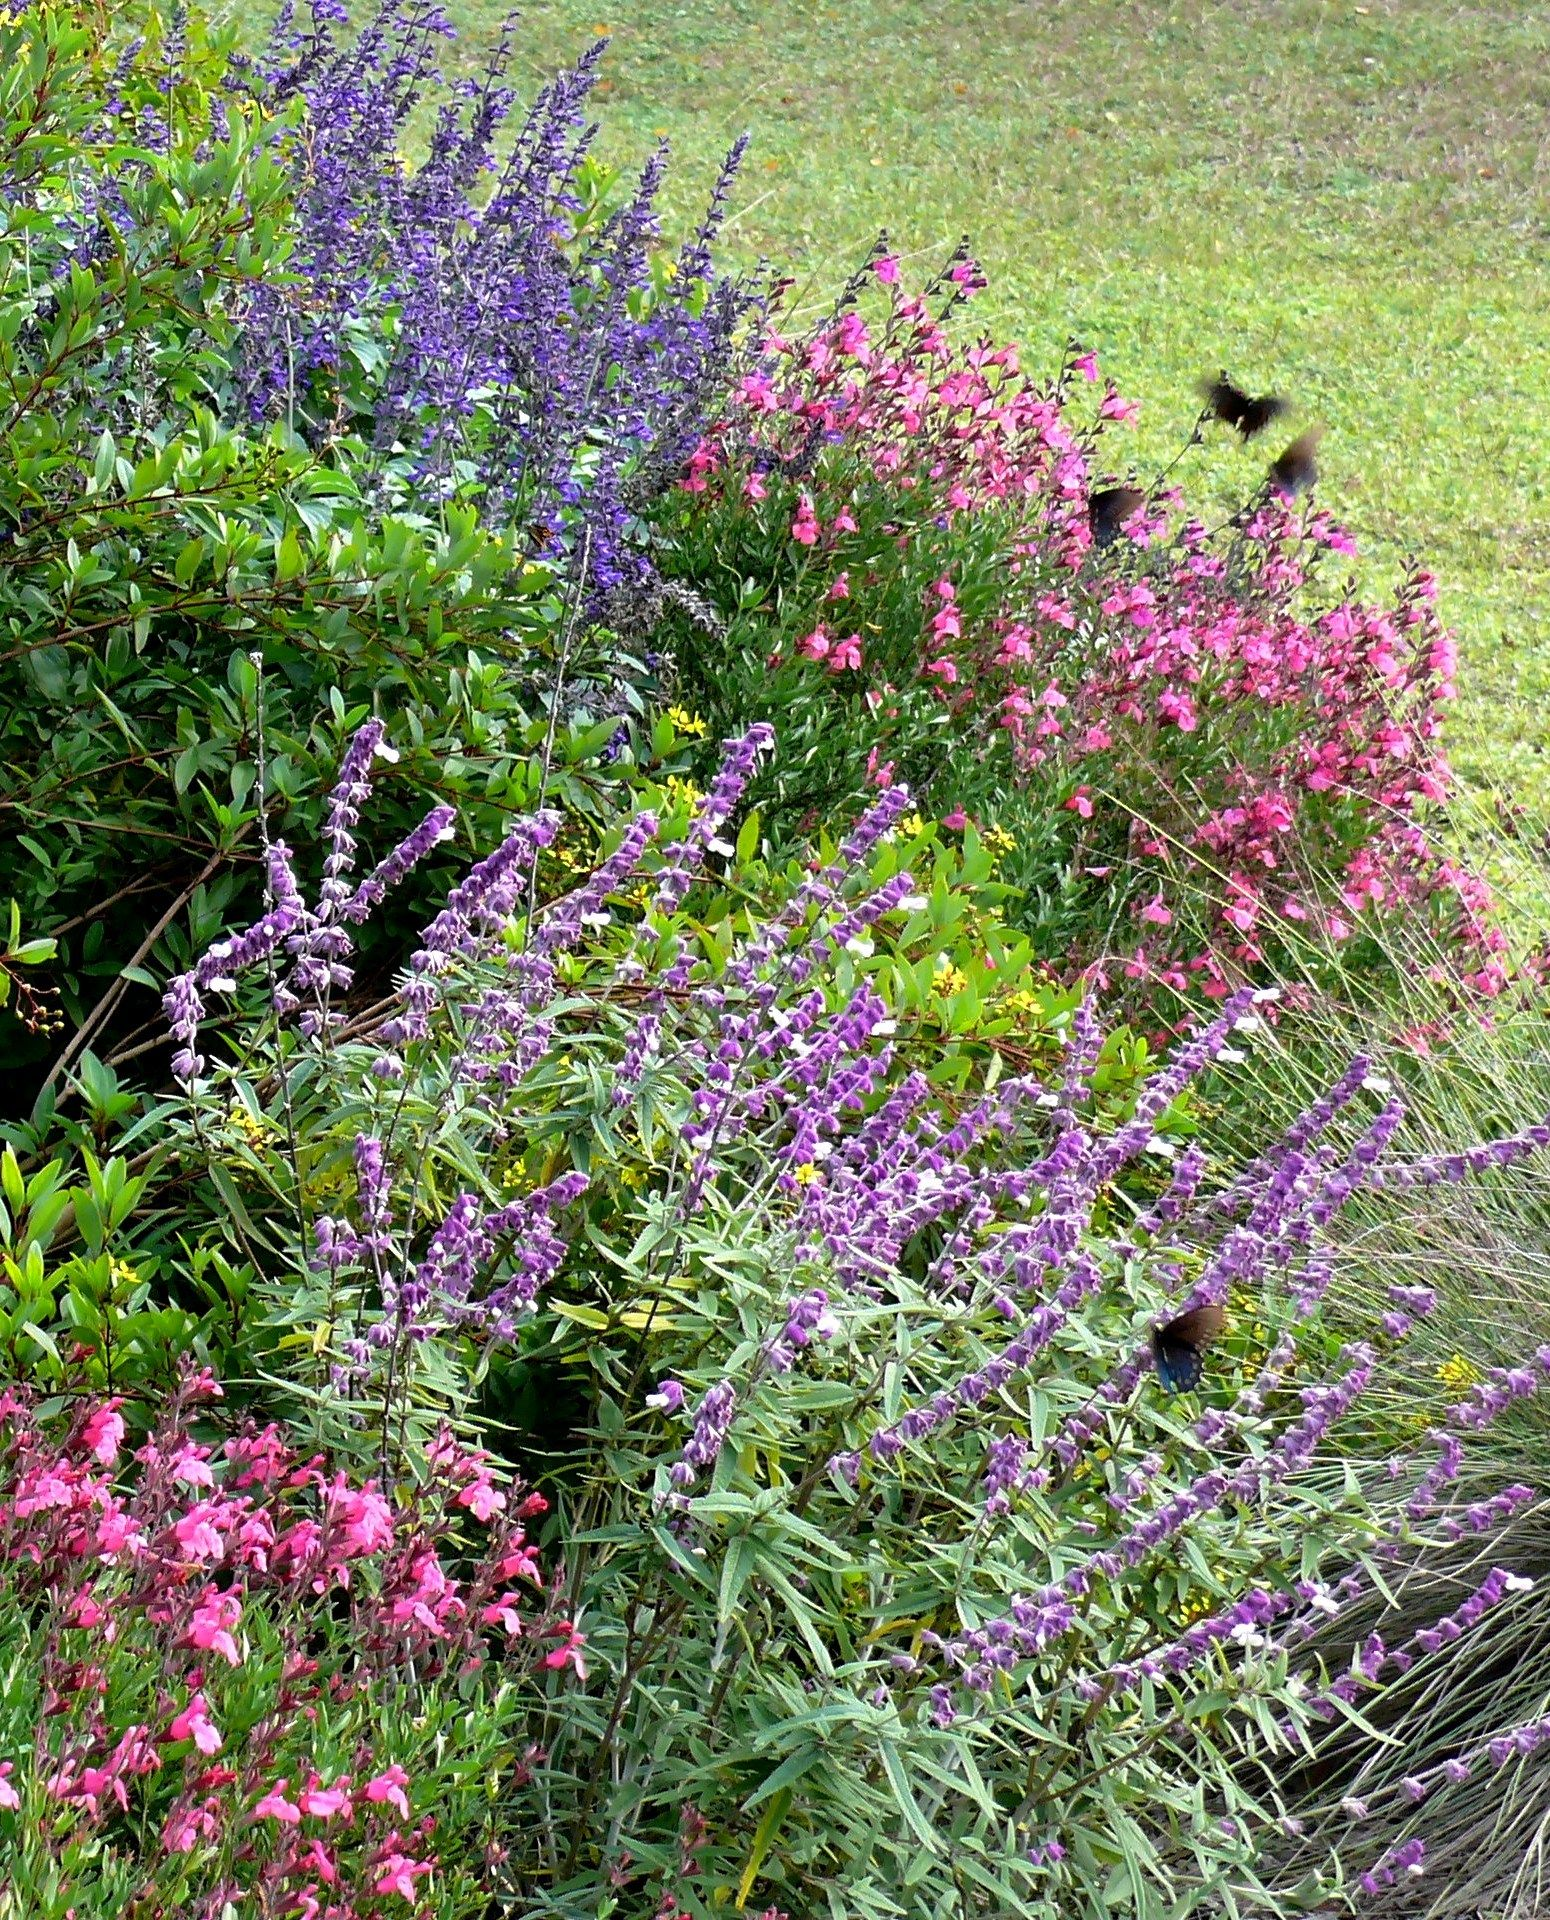 Salvia Are Beautiful Native Plants In Texas Along Bear Springs